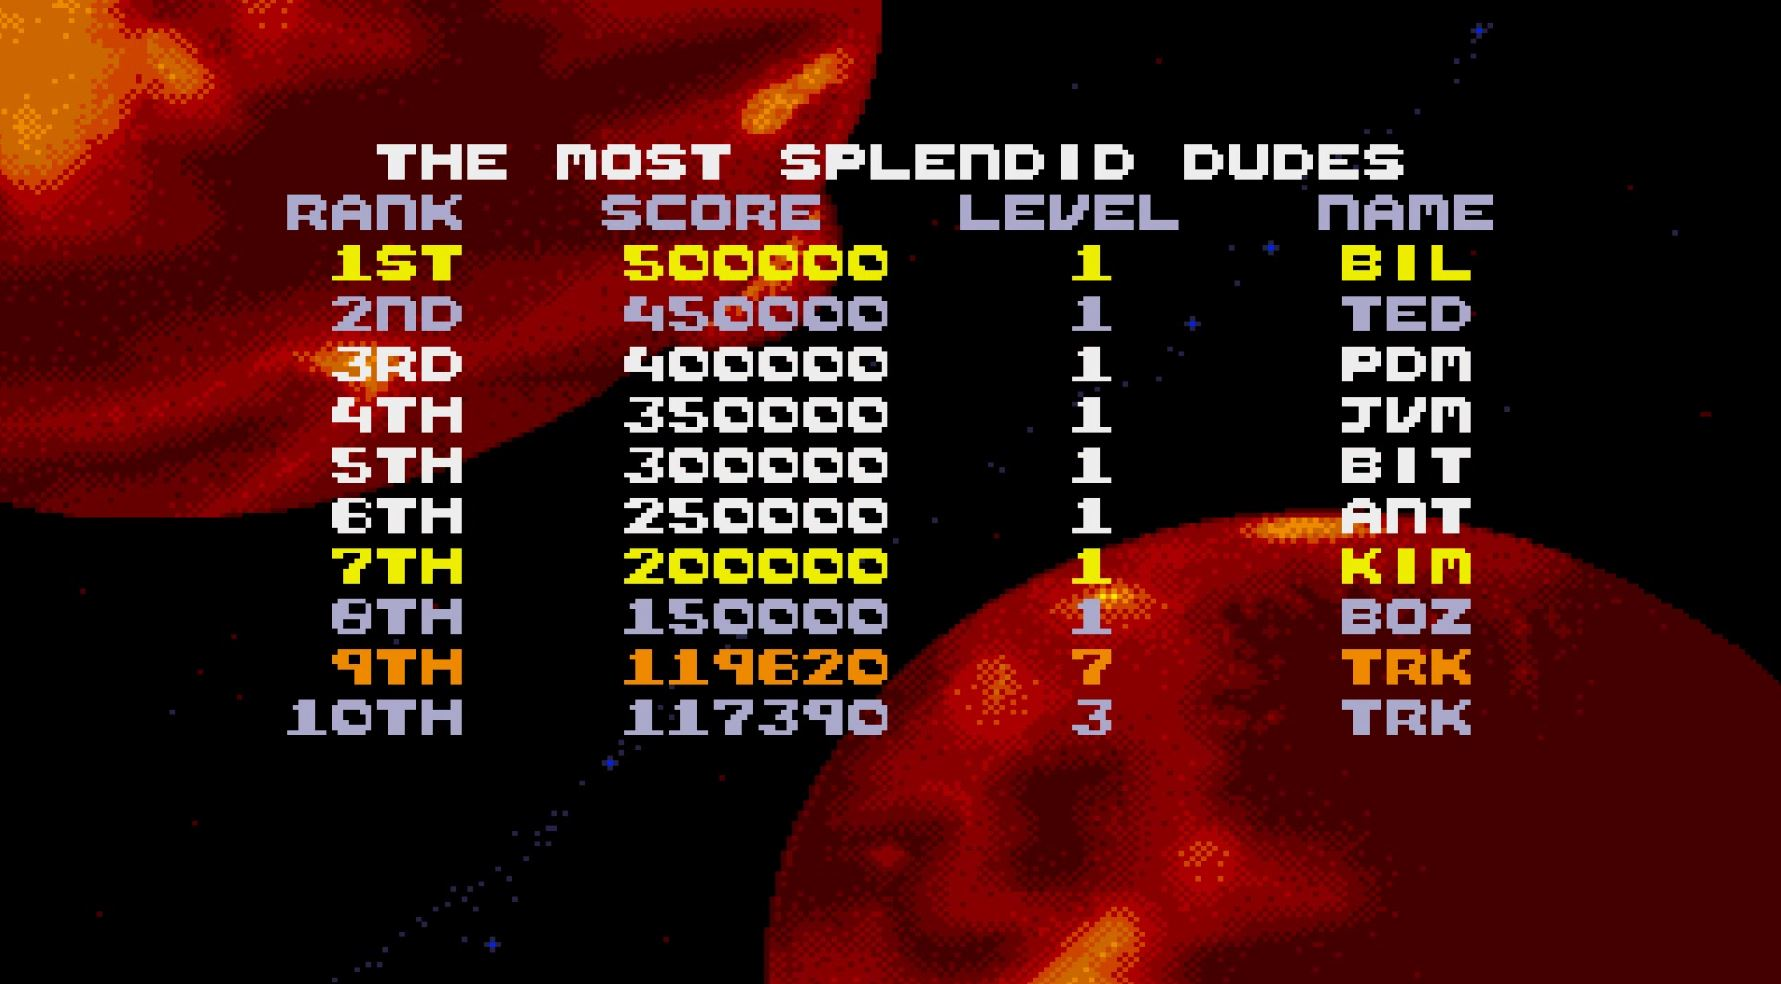 Super Space Invaders [Normal] 119,620 points